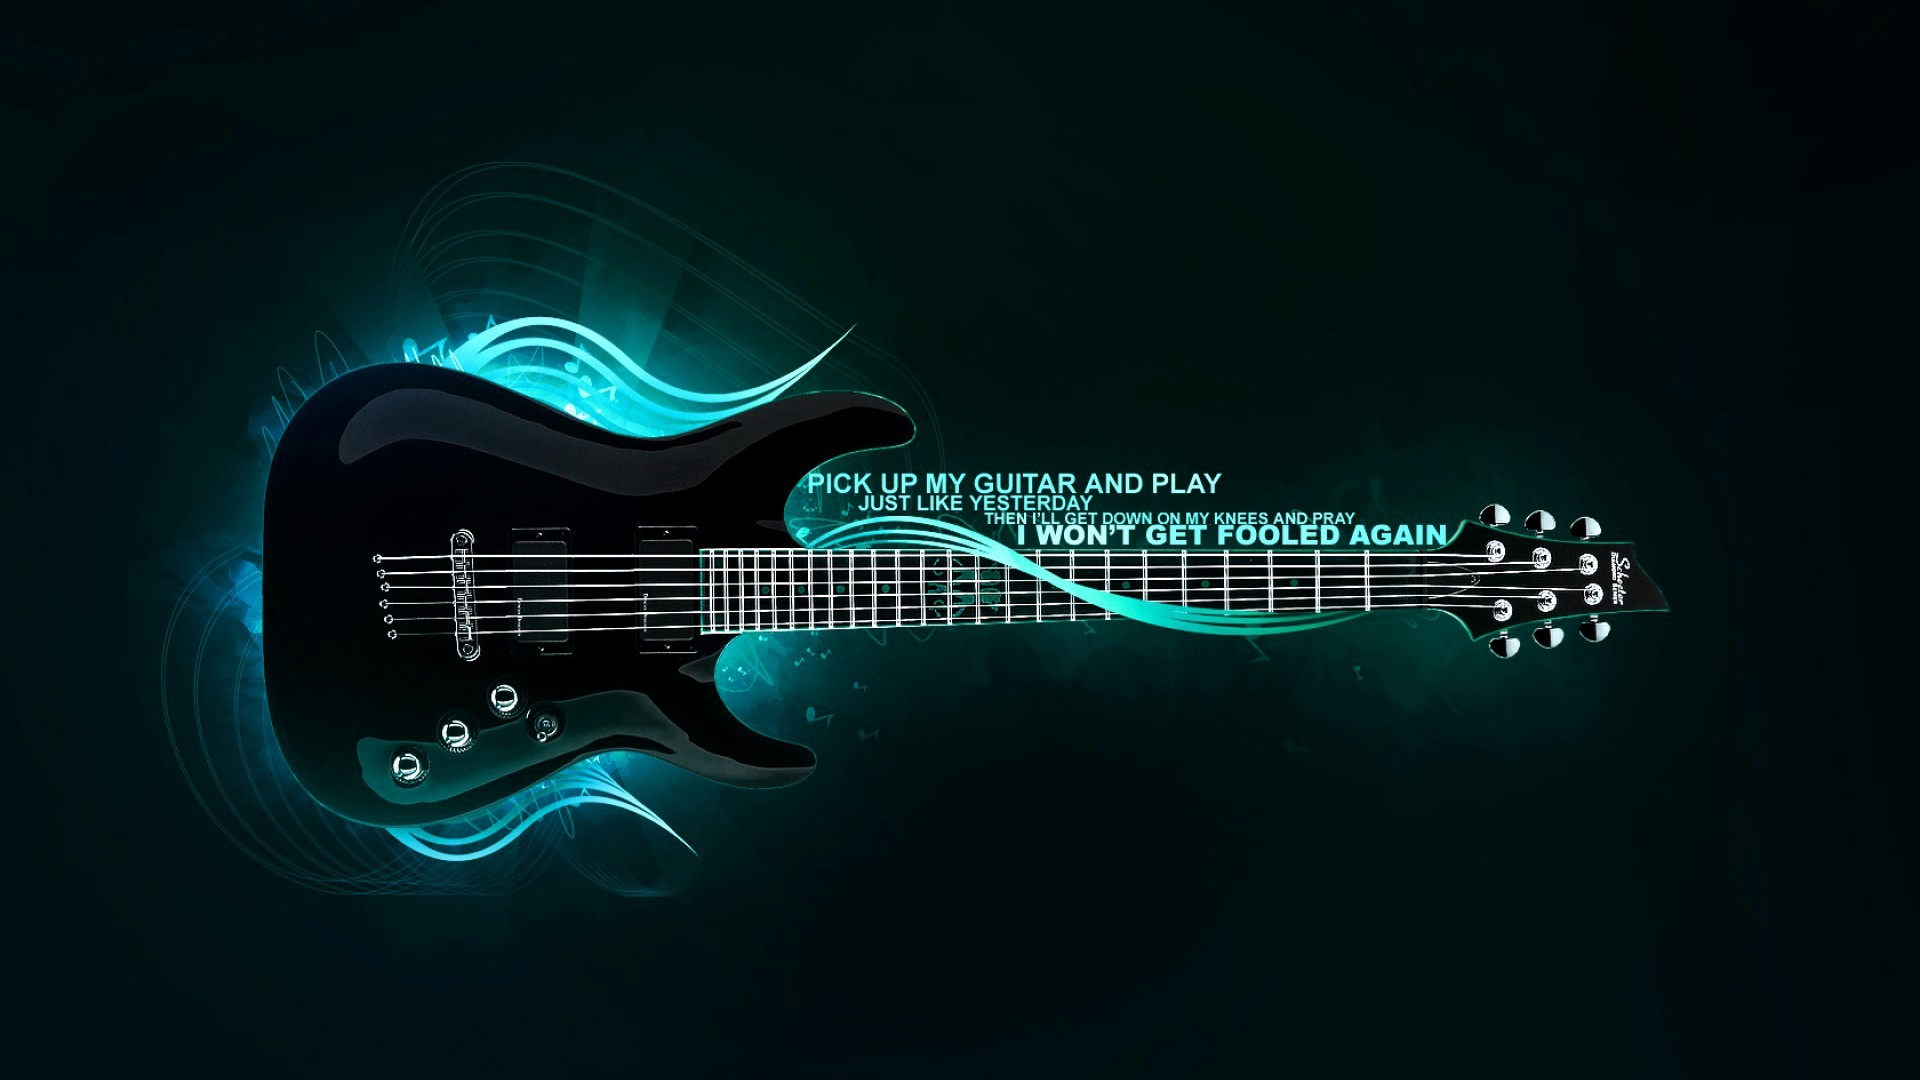 1920x1080 Gibson Guitar Price In Pakistan Hd Pictures Wallpaper Free Download Awesome  Guitar Wallpapers Hd Pictures One